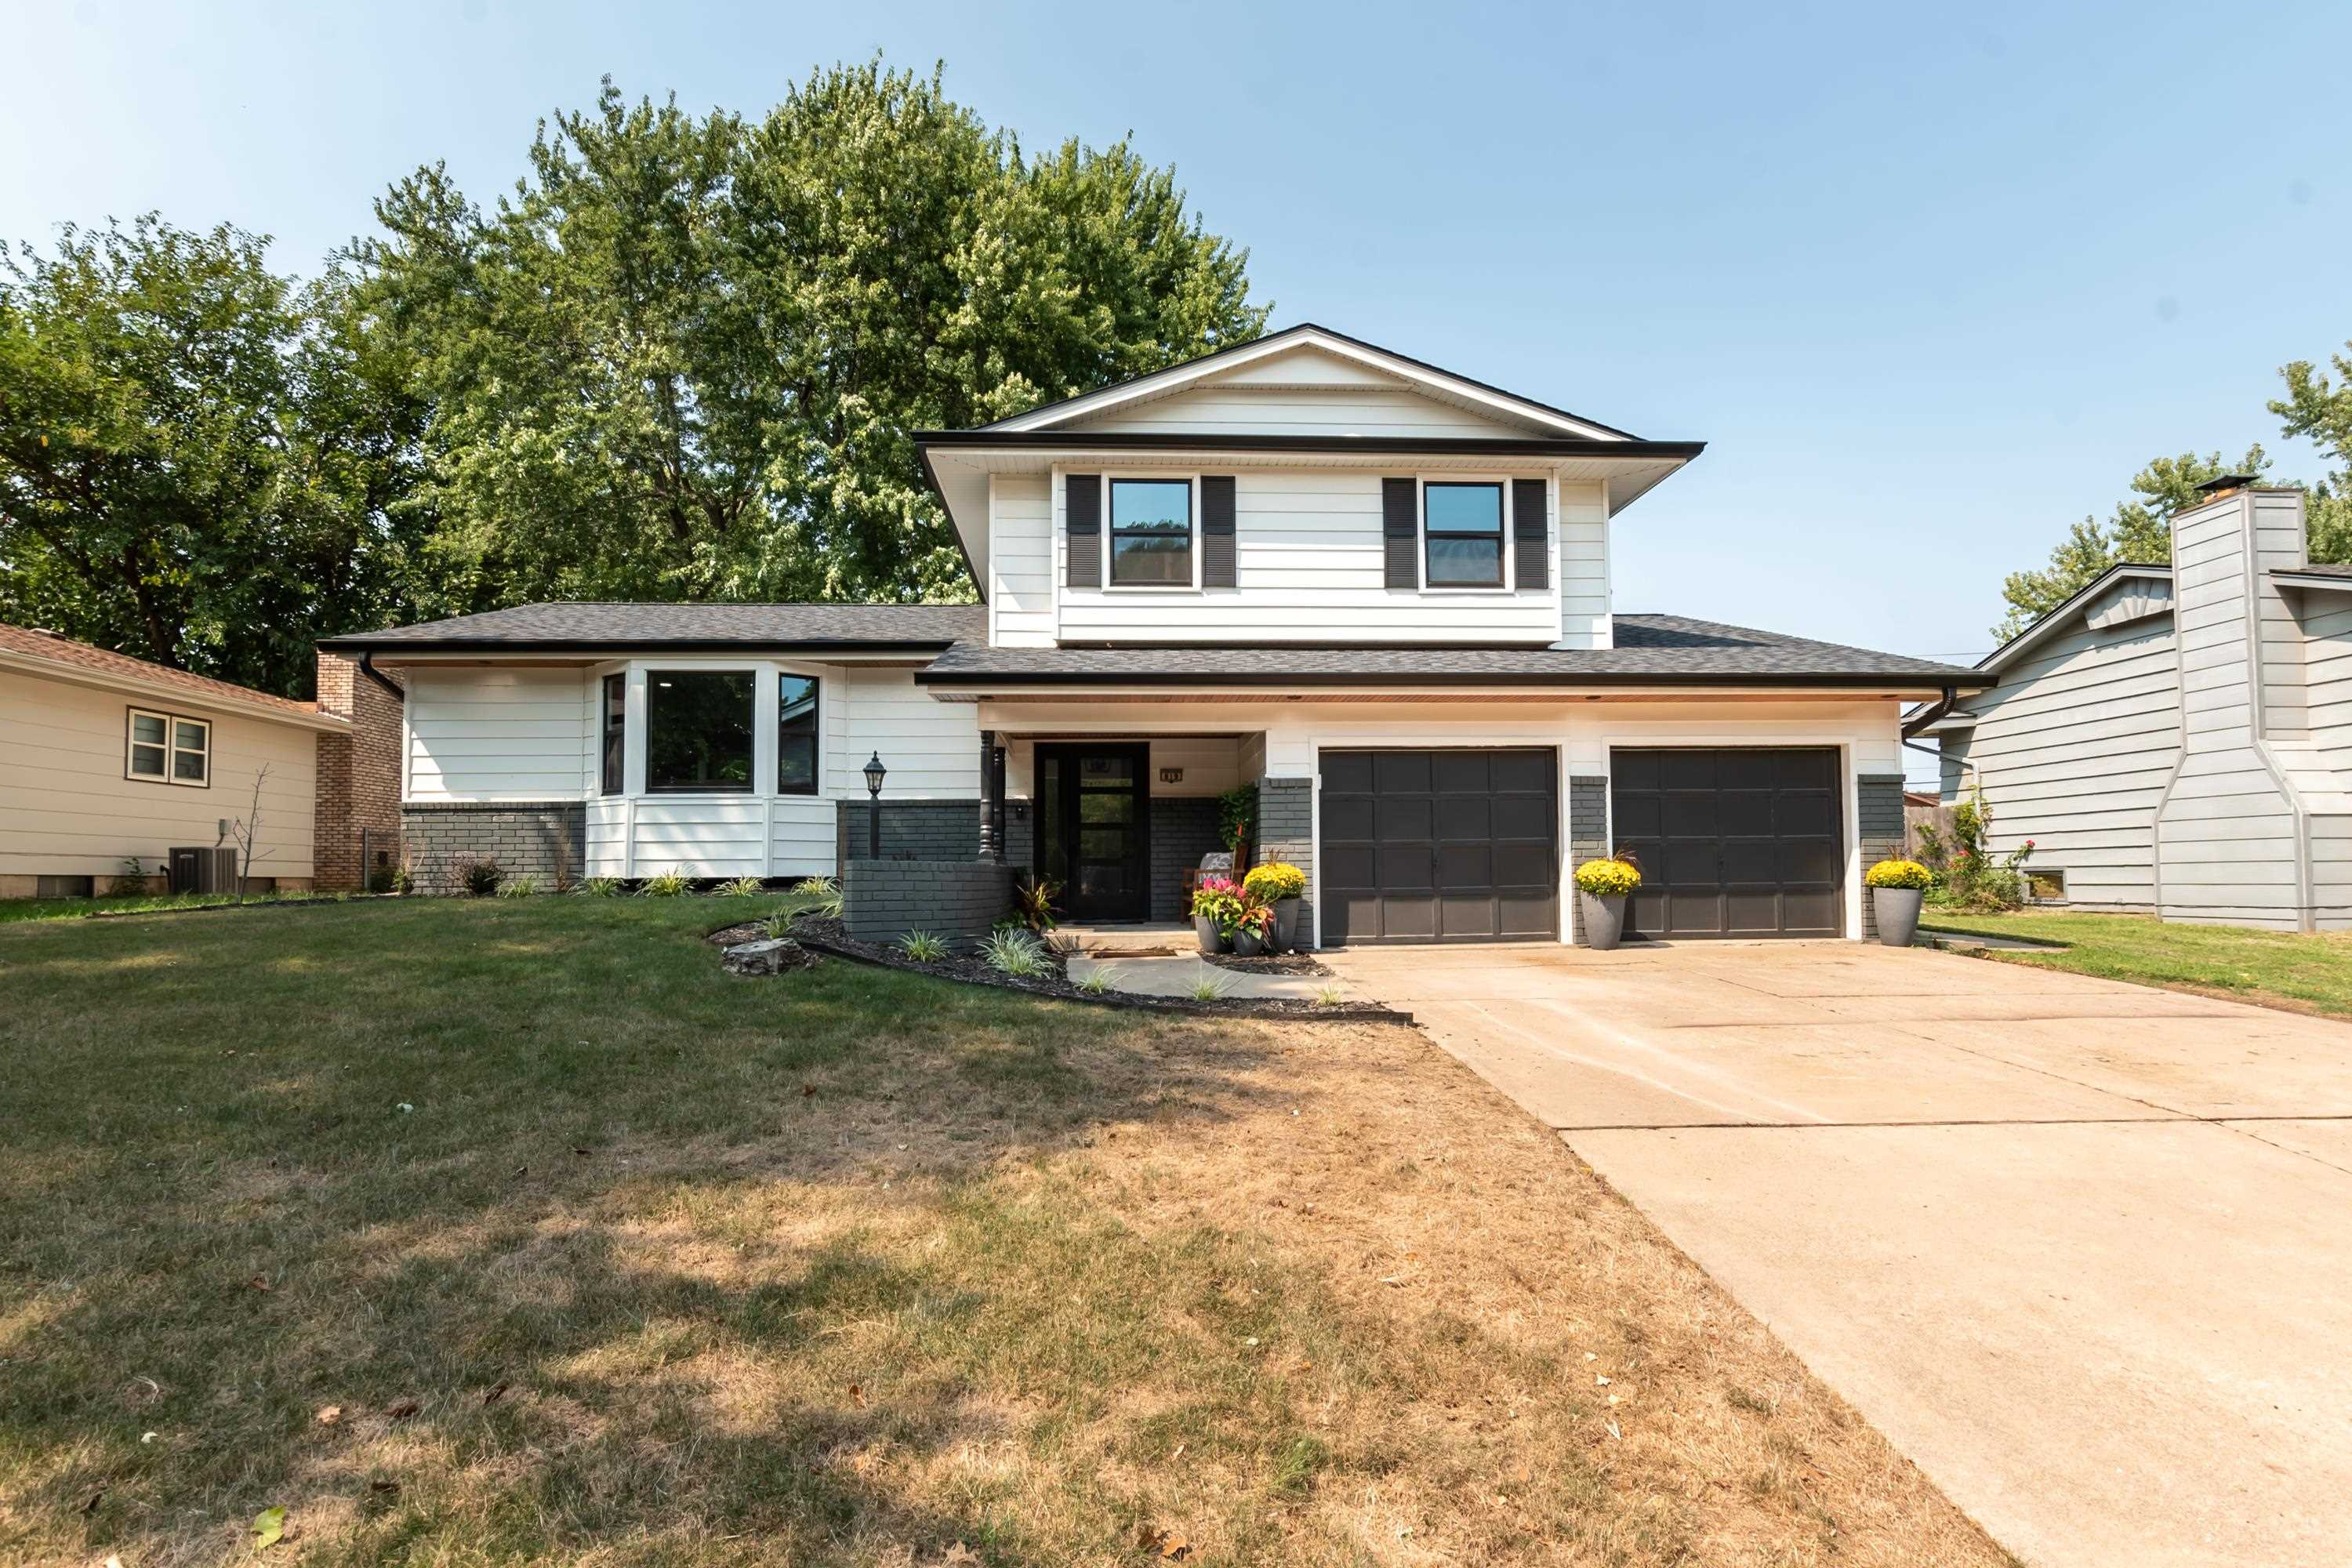 Completely remodeled and stylishly updated 3 bedroom, 2.5 bath home in Derby. Striking curb appeal g